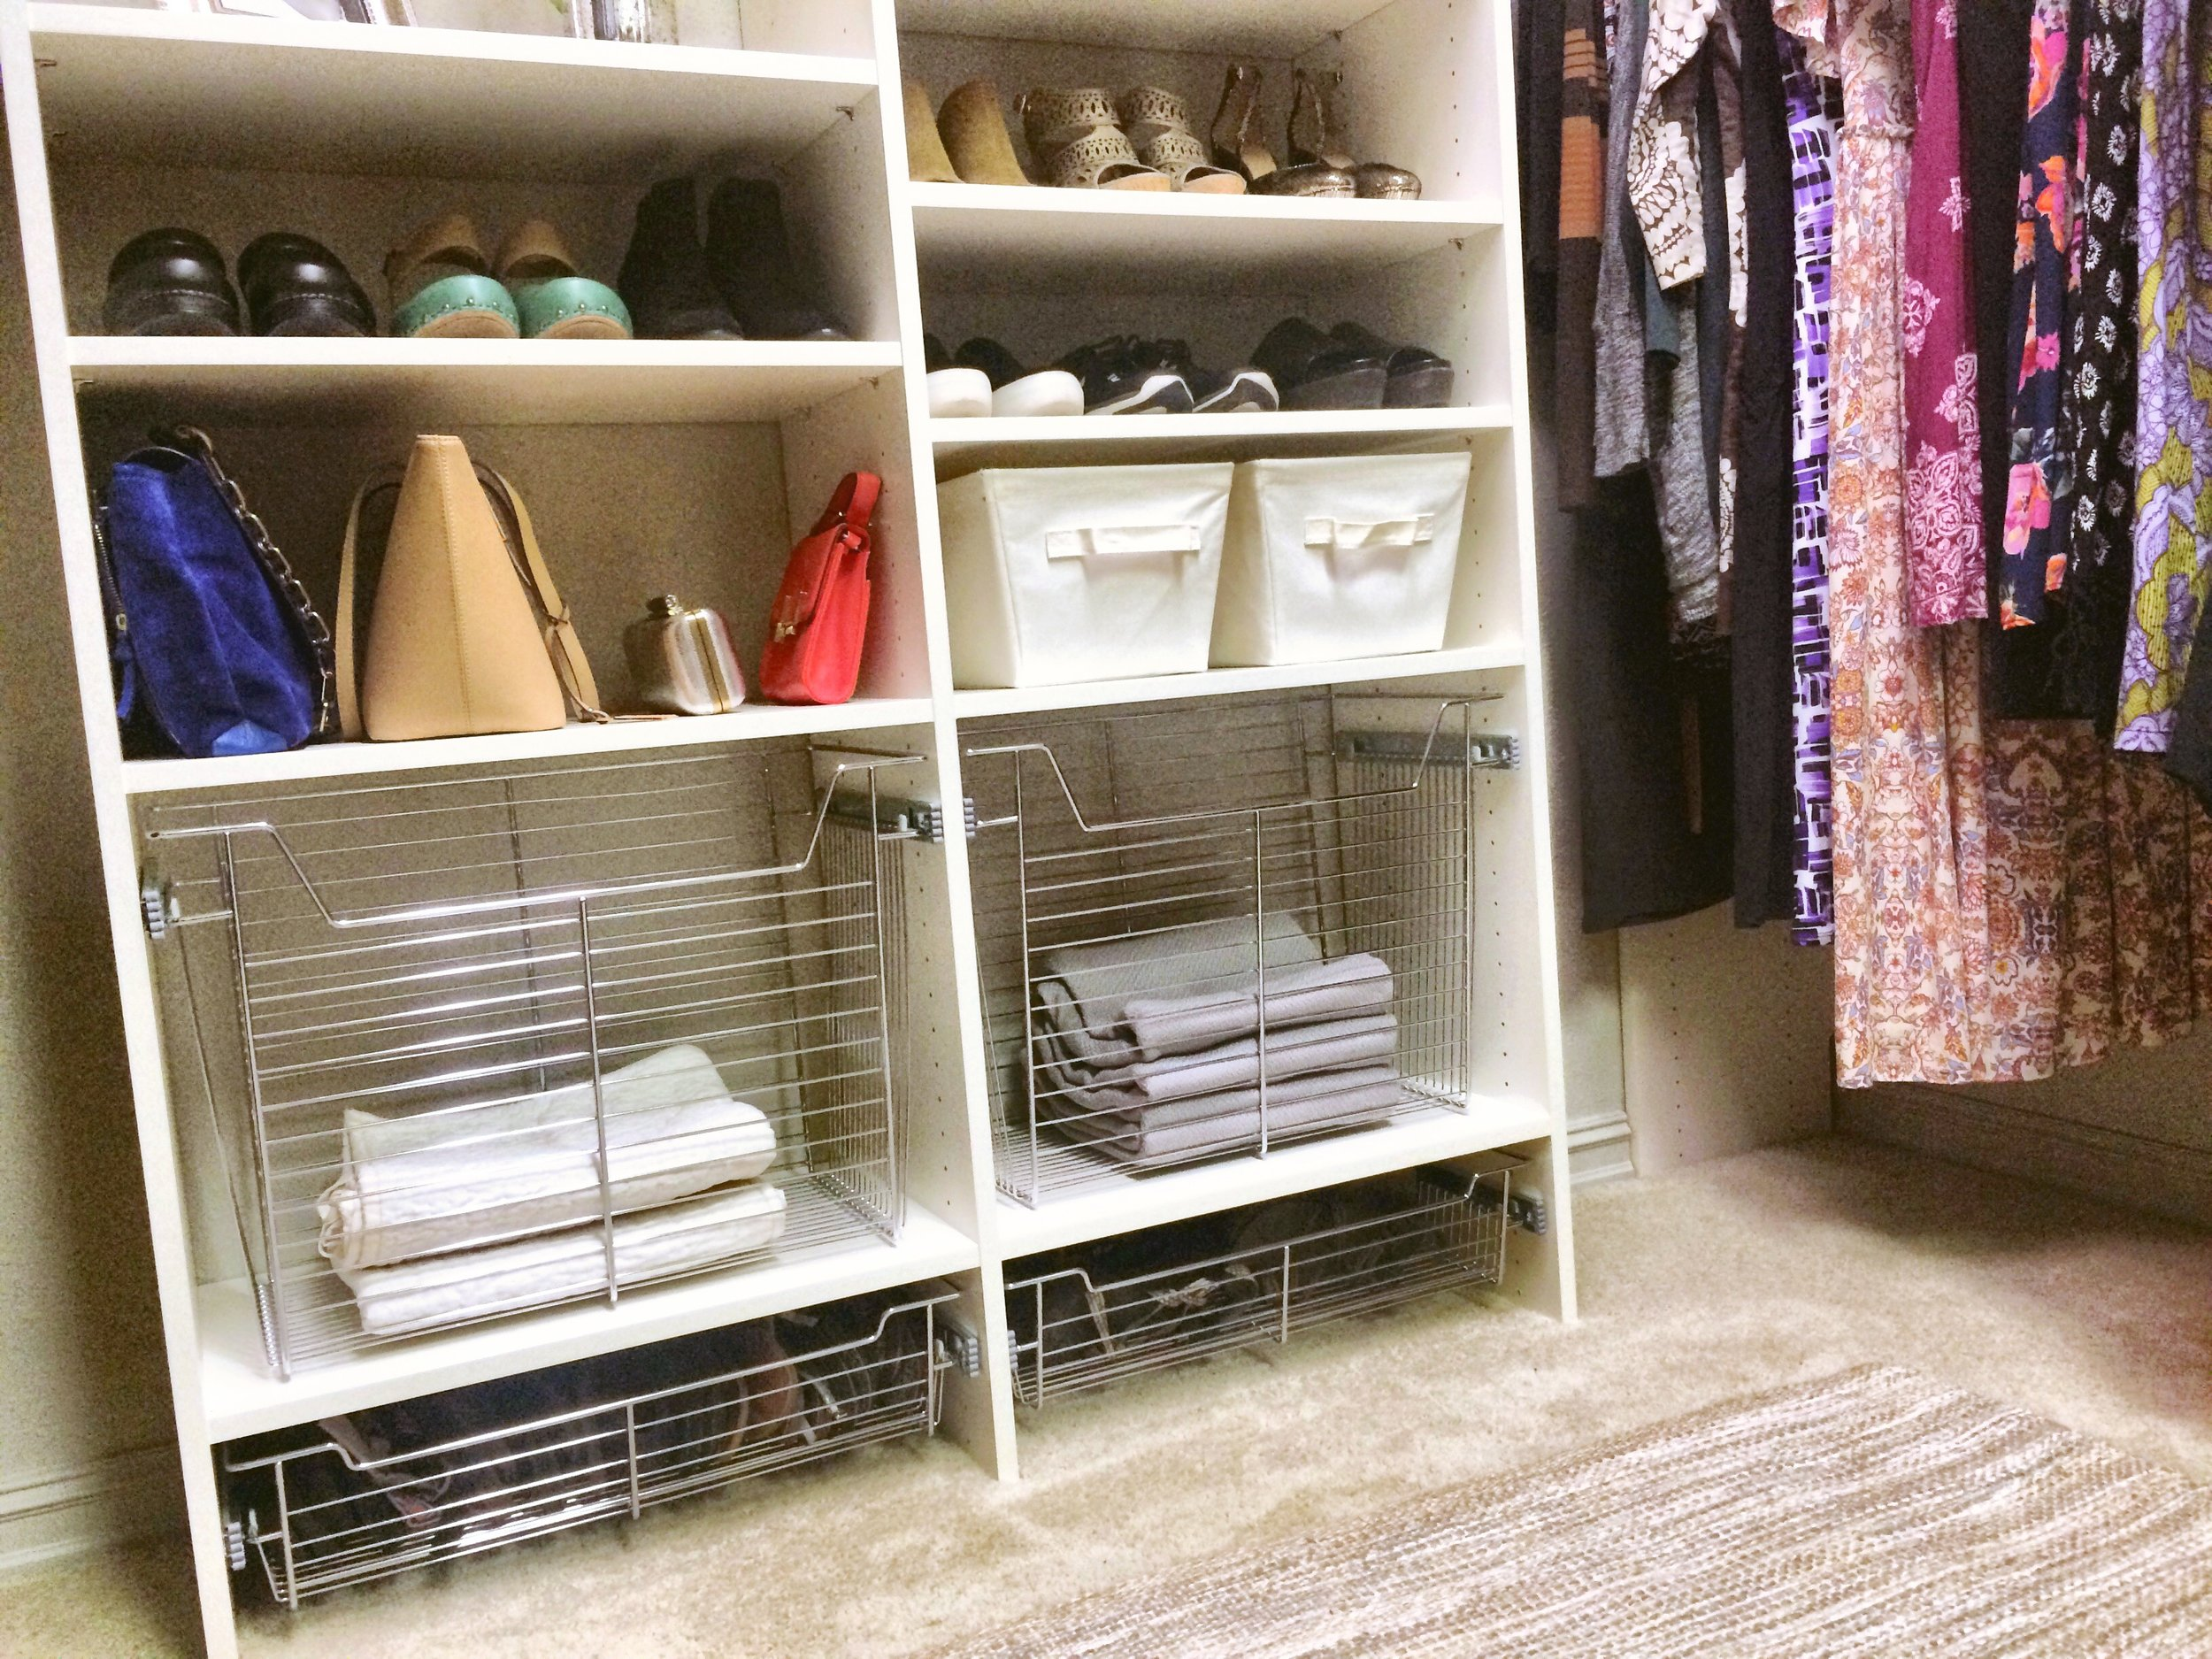 Use multiple hampers to sort clothing and stay organized.  Call Closets of Tulsa  today for a FREE consultation and 3-D closet design:  918.609.0214